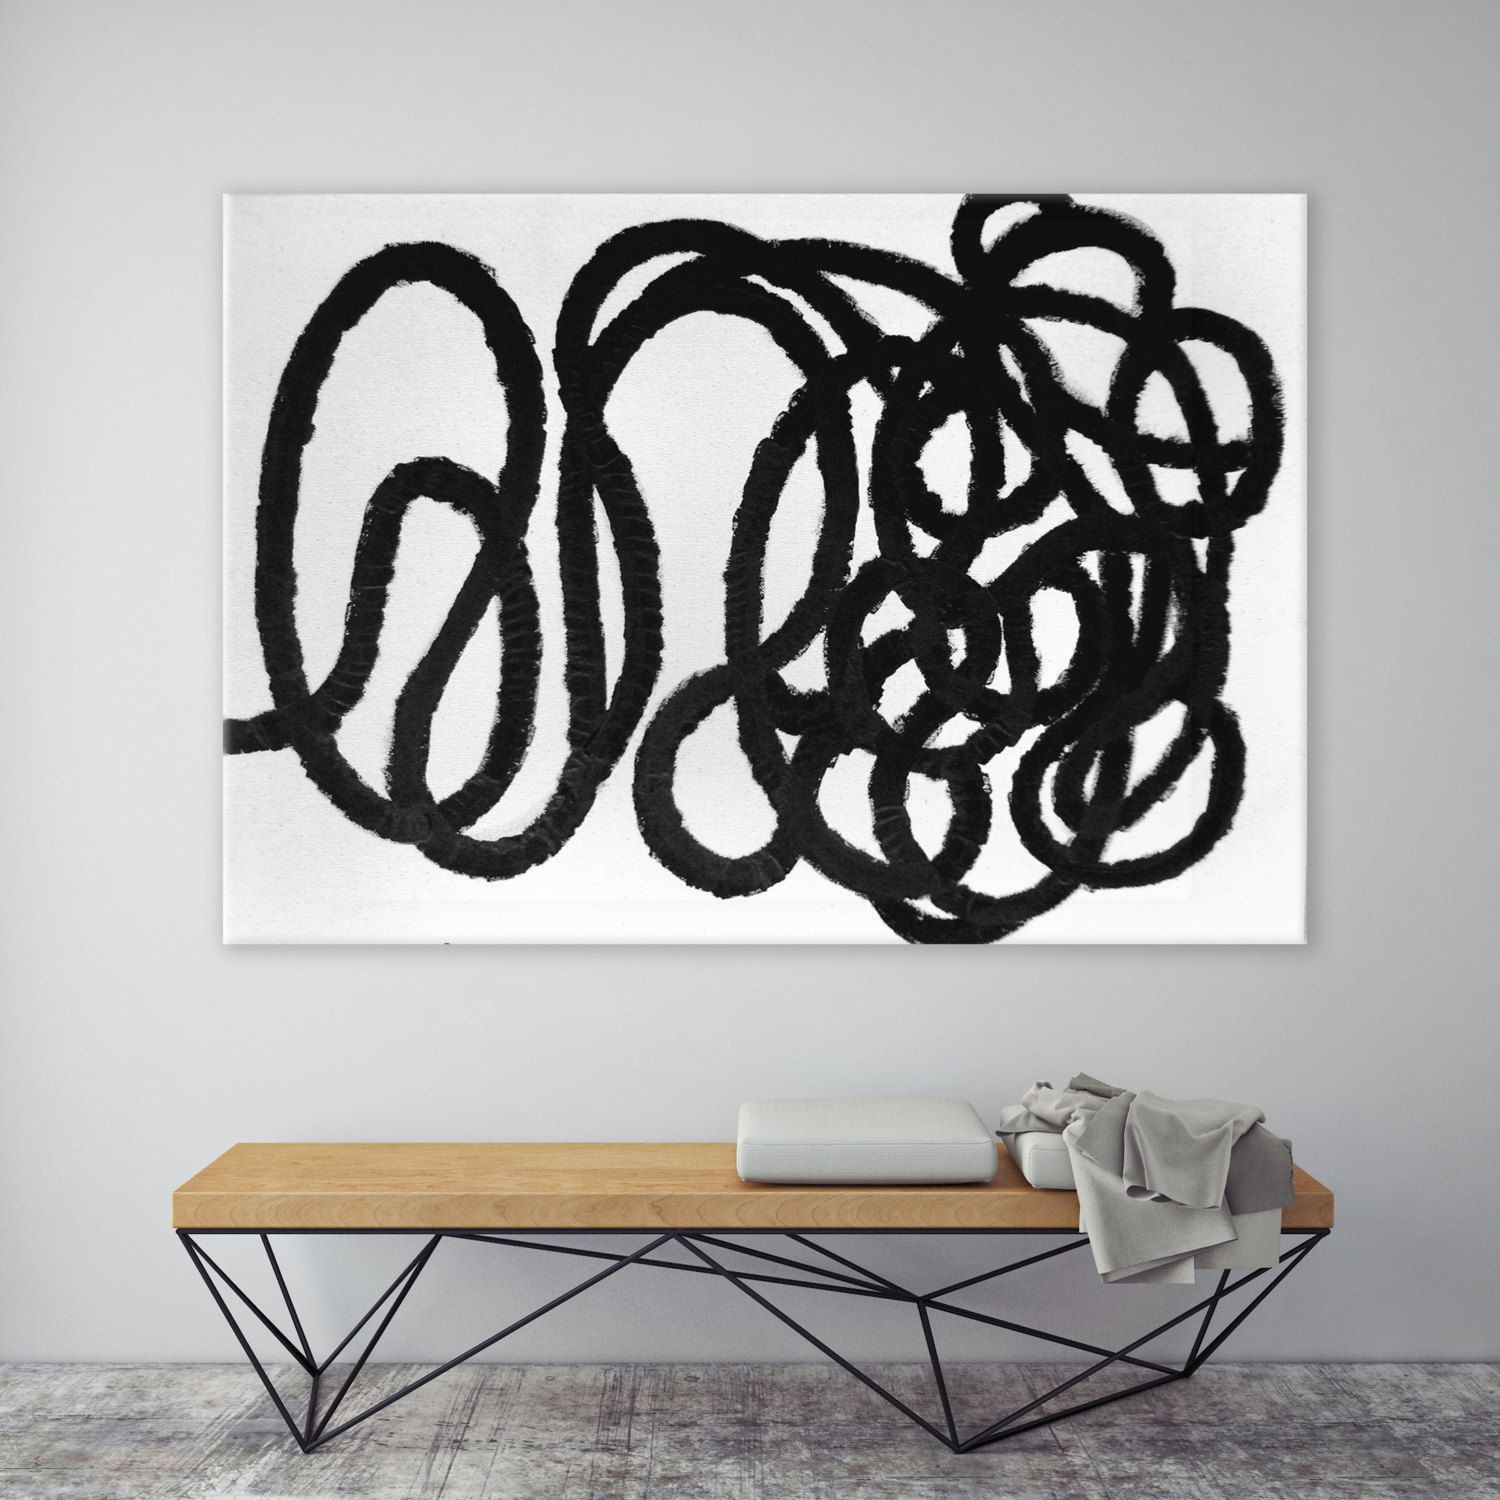 tall acrylic vases of large wall art pieces new living room vases wholesale new h vases for large wall art pieces beautiful wall art minimalist black and white modern abstract canvas of large